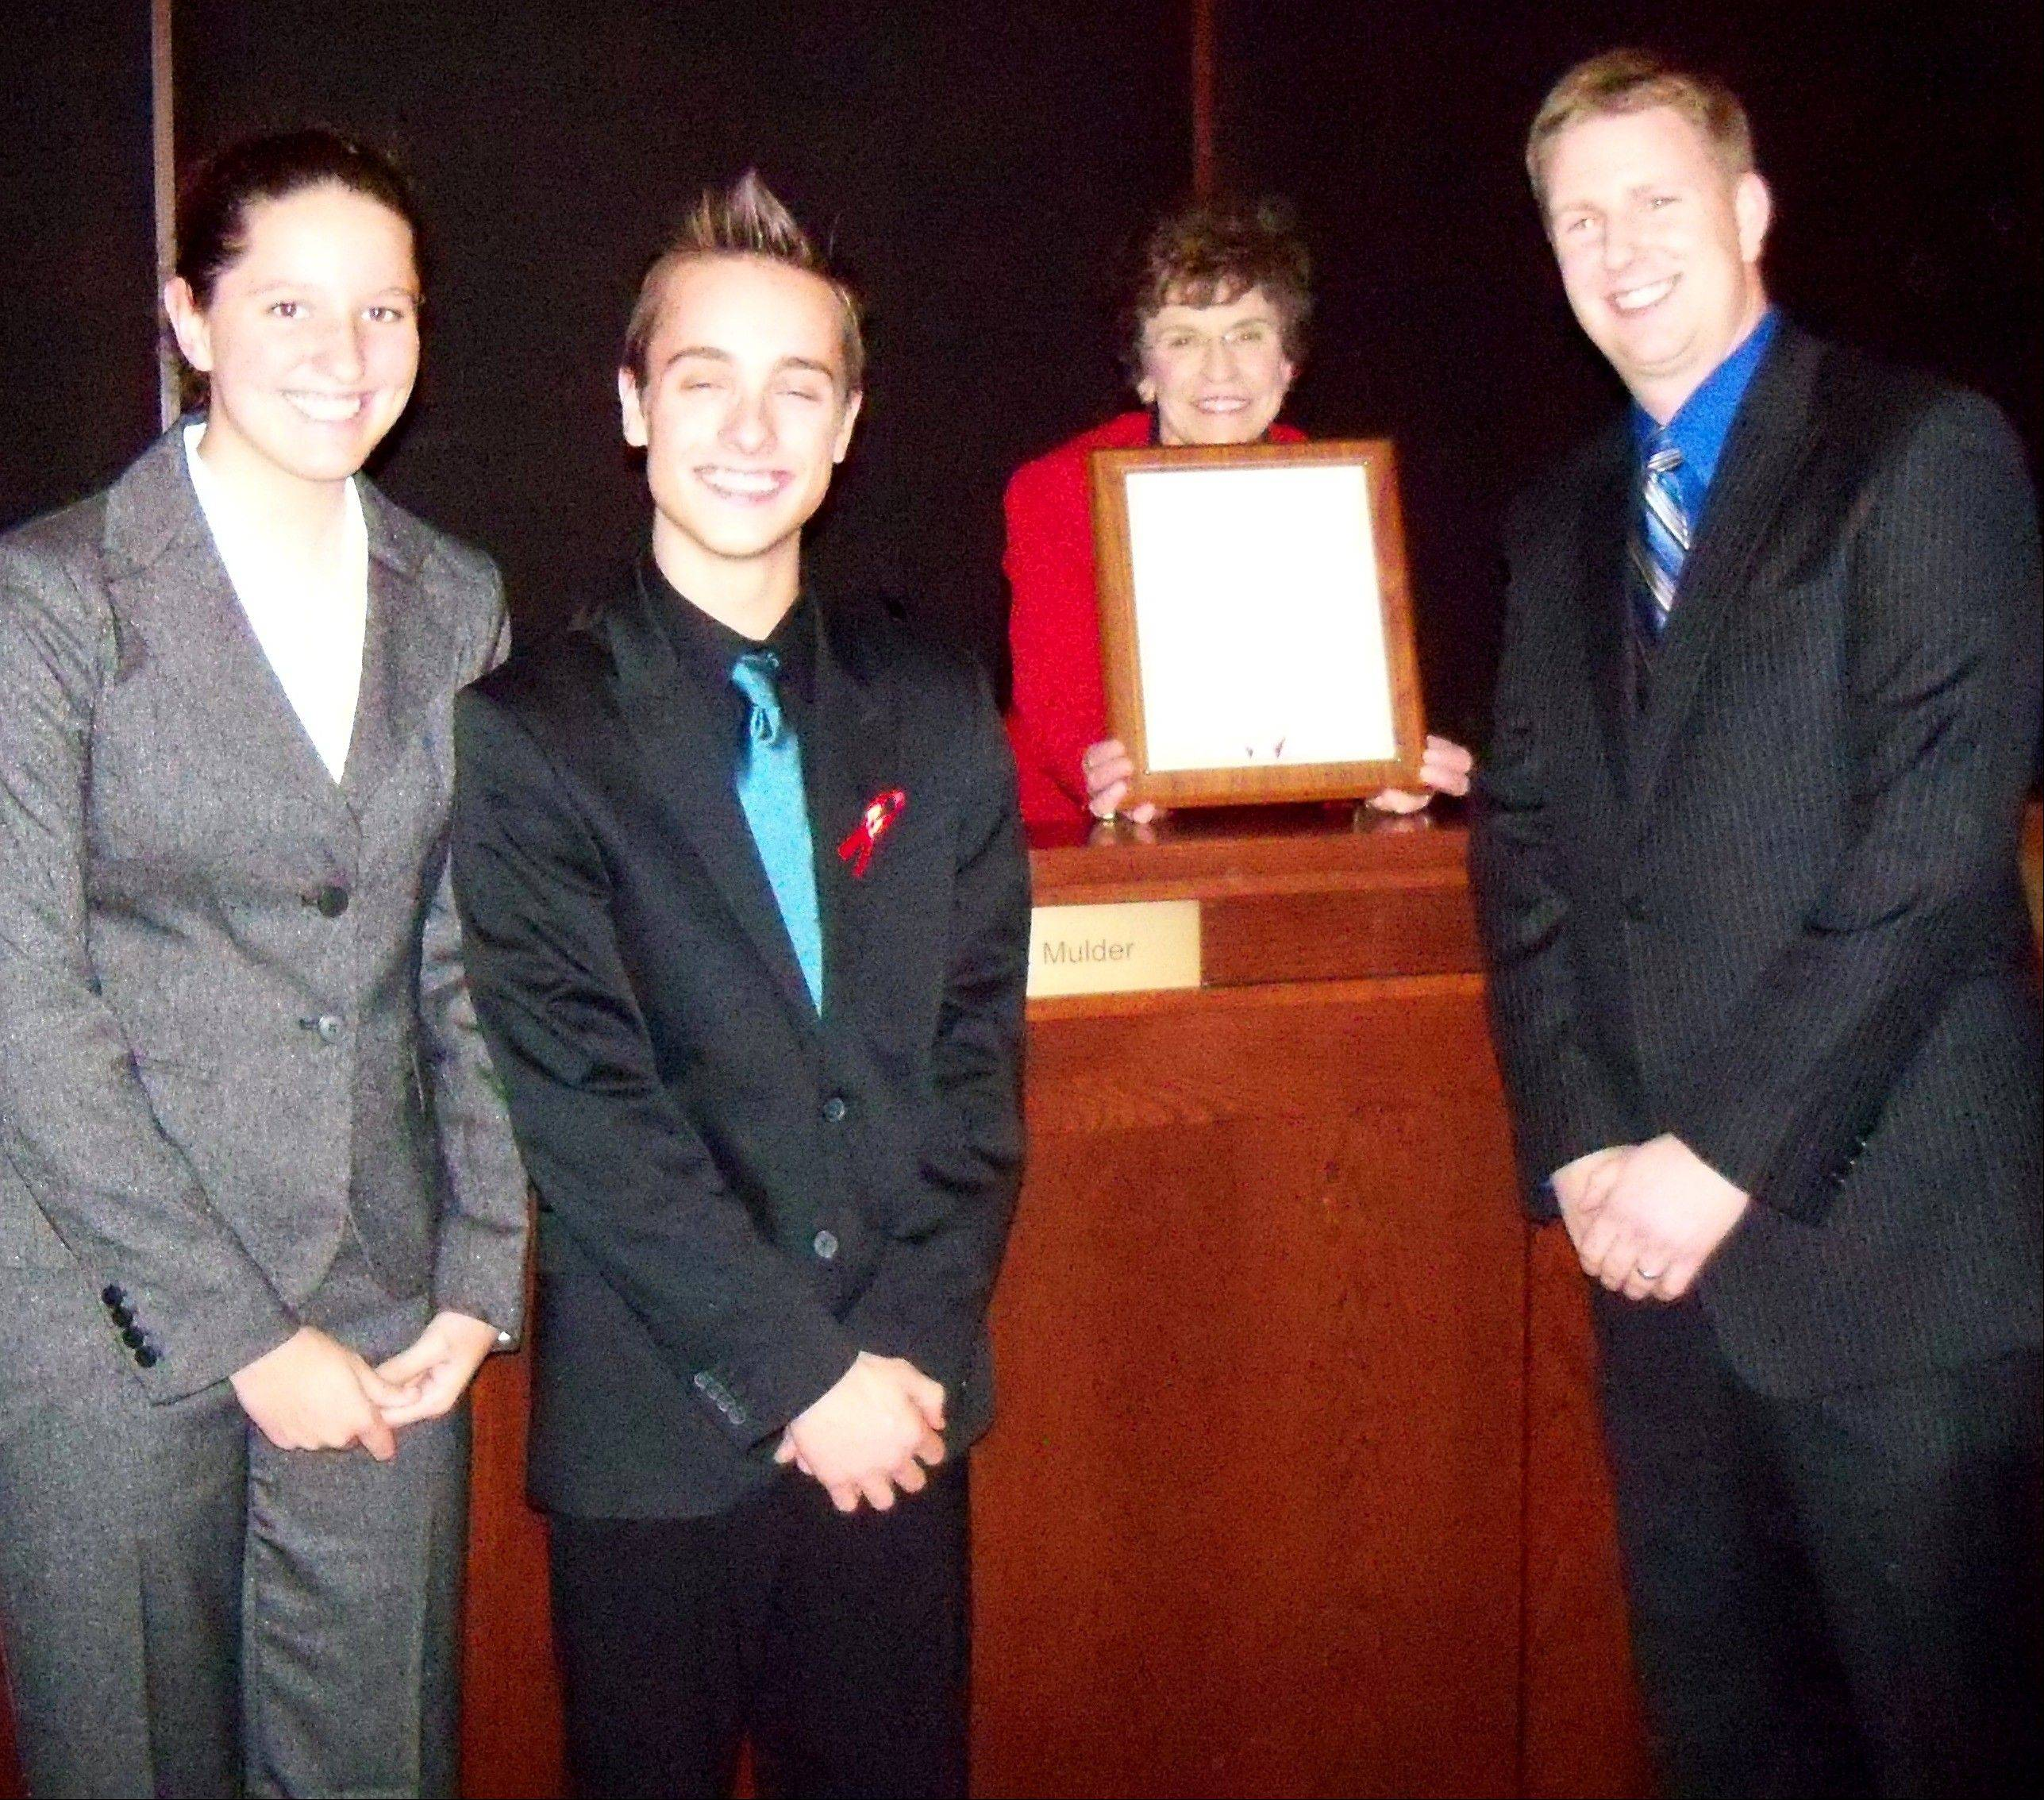 Accepting the Proclamation of Recognition from Arlington Heights Mayor Arlene J. Mulder, center, are Prospect Marching Knights' Drum Majors (student directors) Destiny Duraj, far left, and Ted Marzolf, and director of bands Chris Barnum, right.